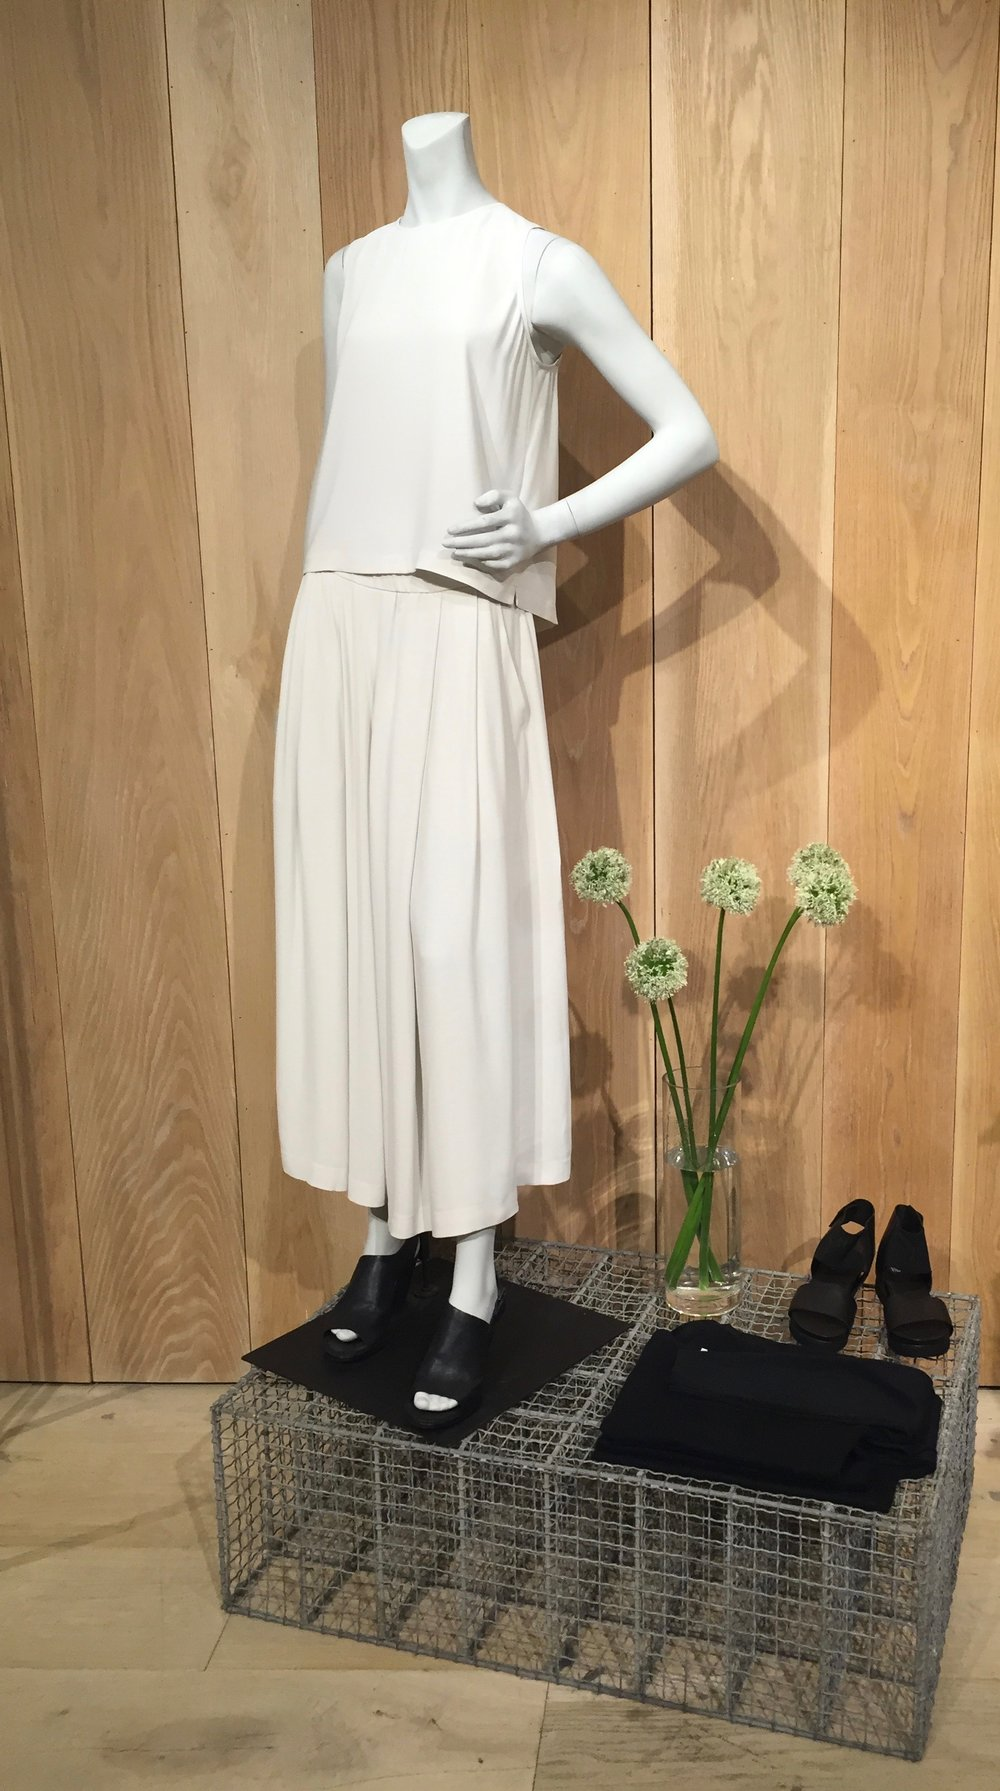 Eileen Fisher Store I Flatiron District